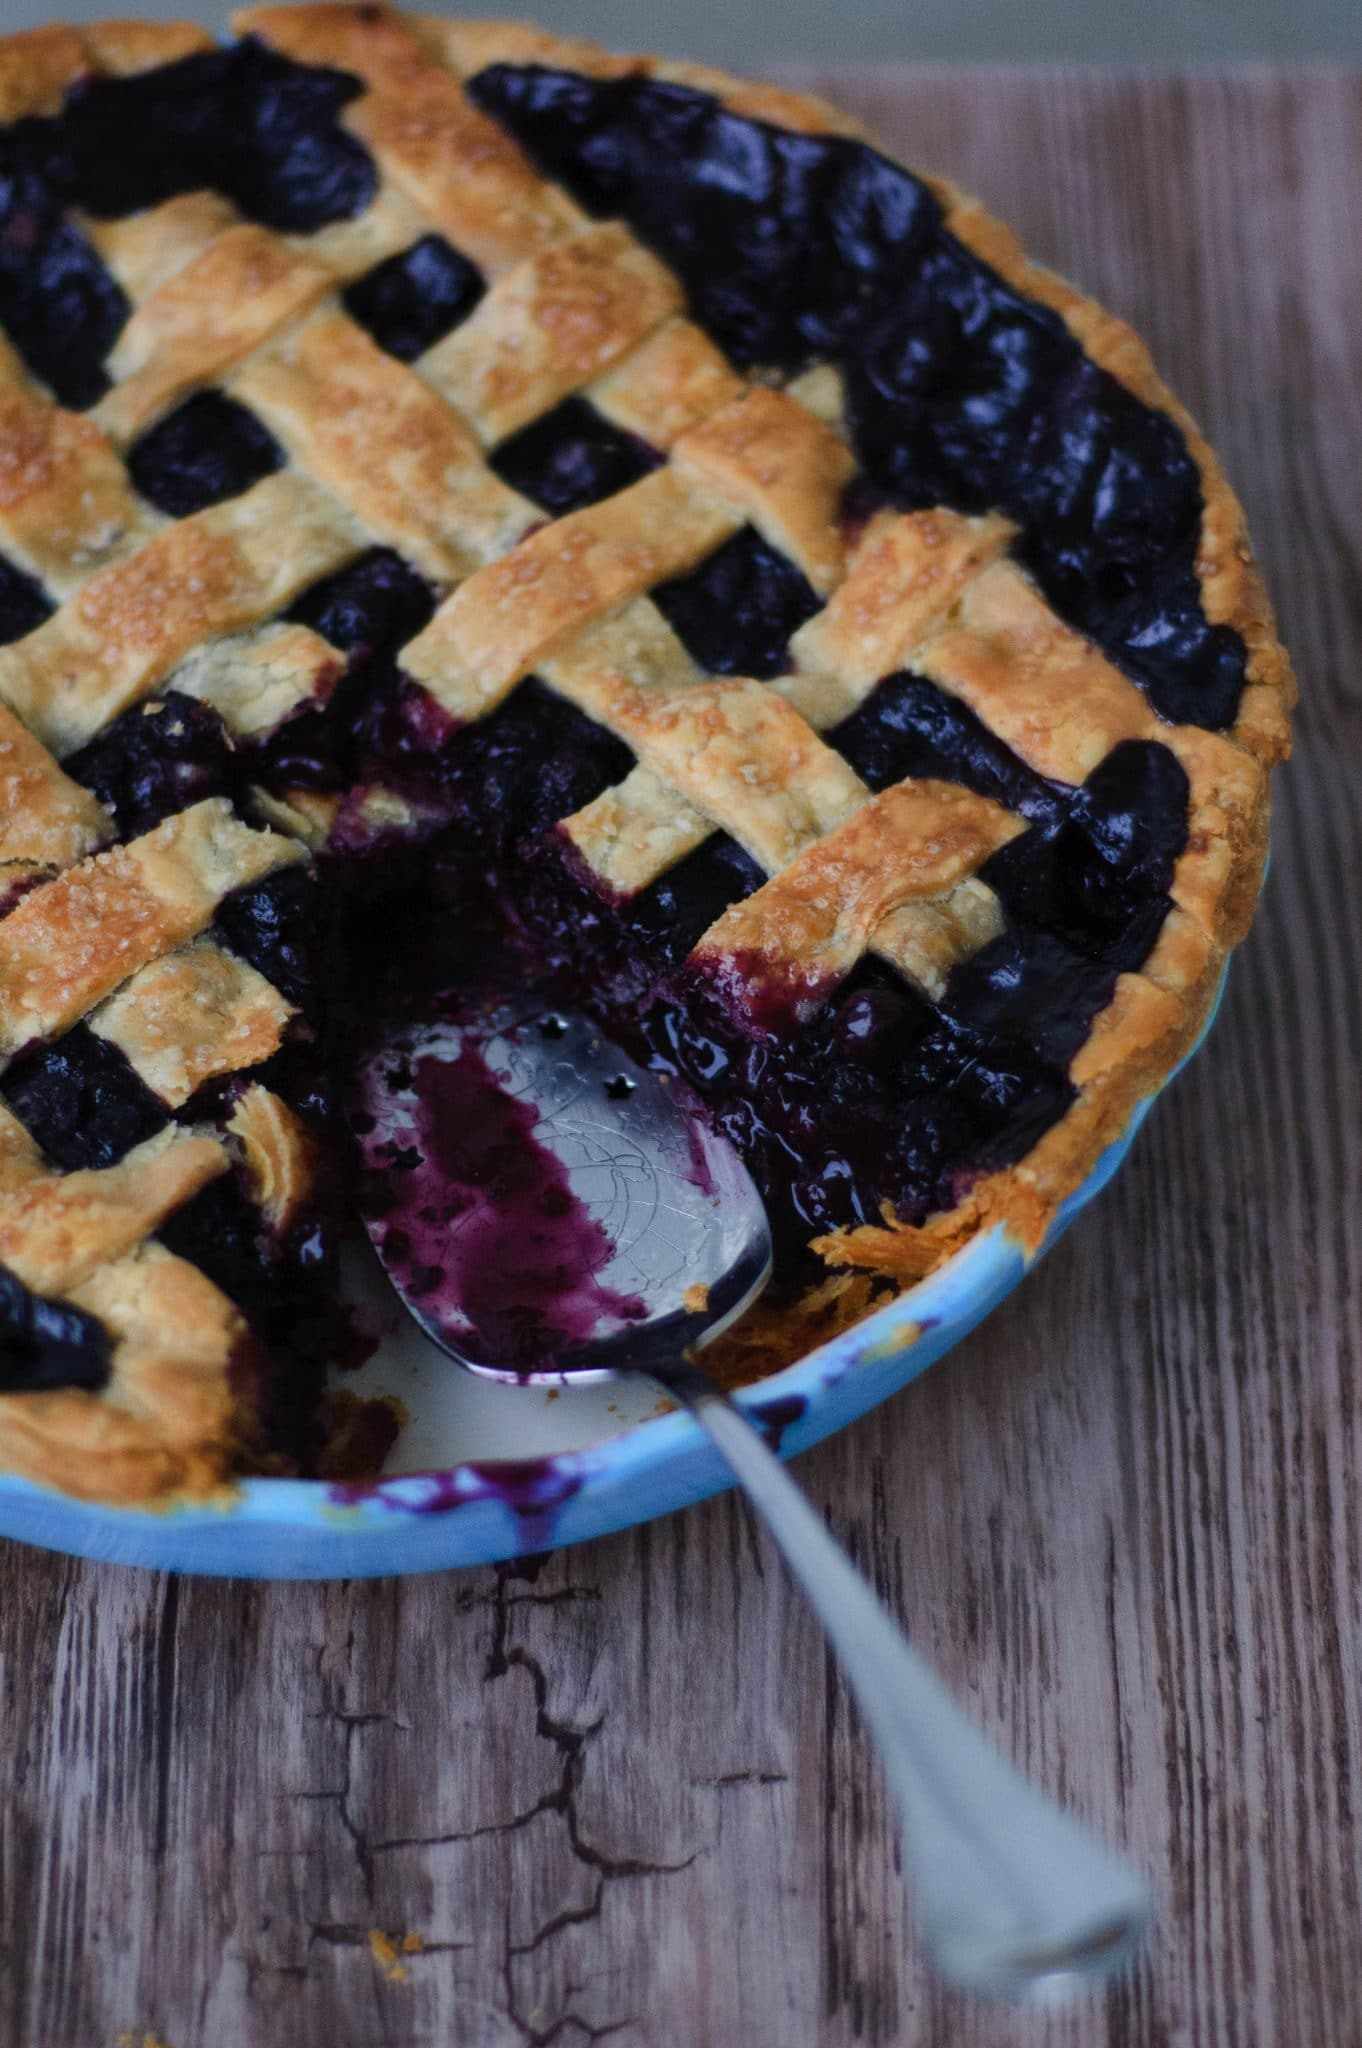 This recipe for spiced blueberry pie will make you wish autumn & winter were here sooner. Its earthy spices and rich flavor are enticing and delicious.